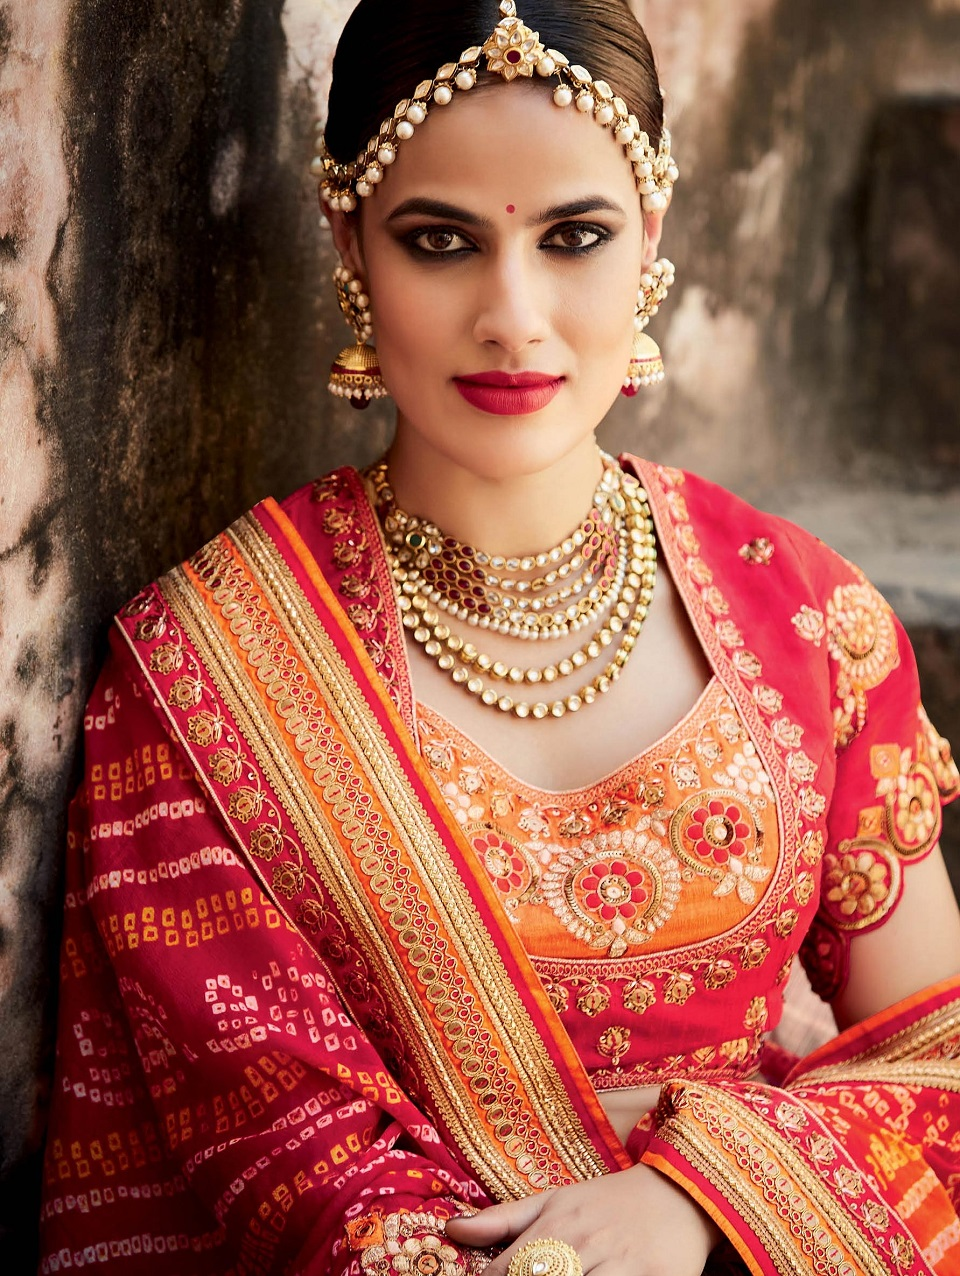 Indian Wedding Fashion Trends